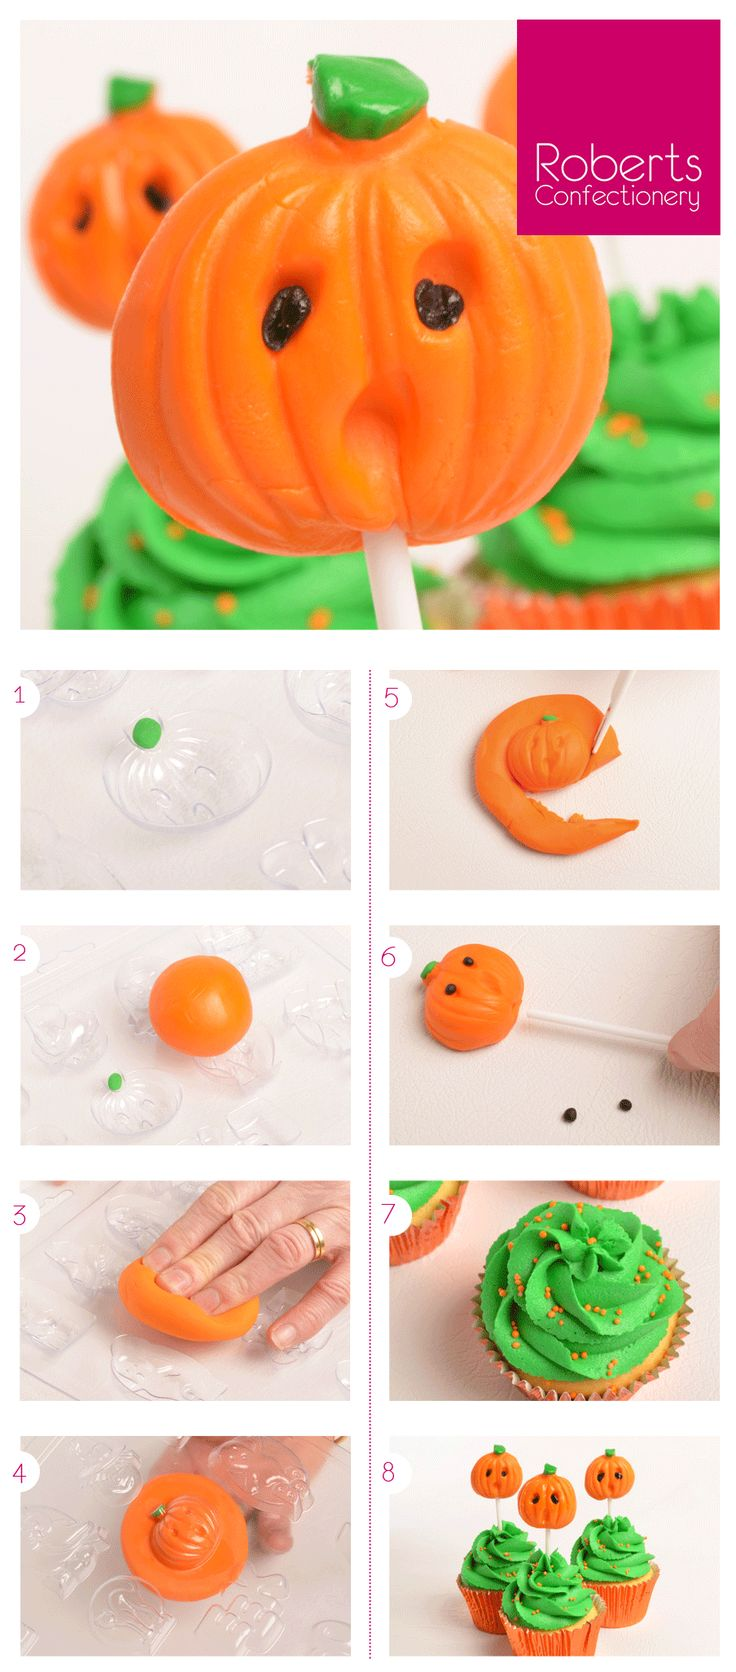 Pumpkin Pops - using Roberts Confectionery Halloween Mould